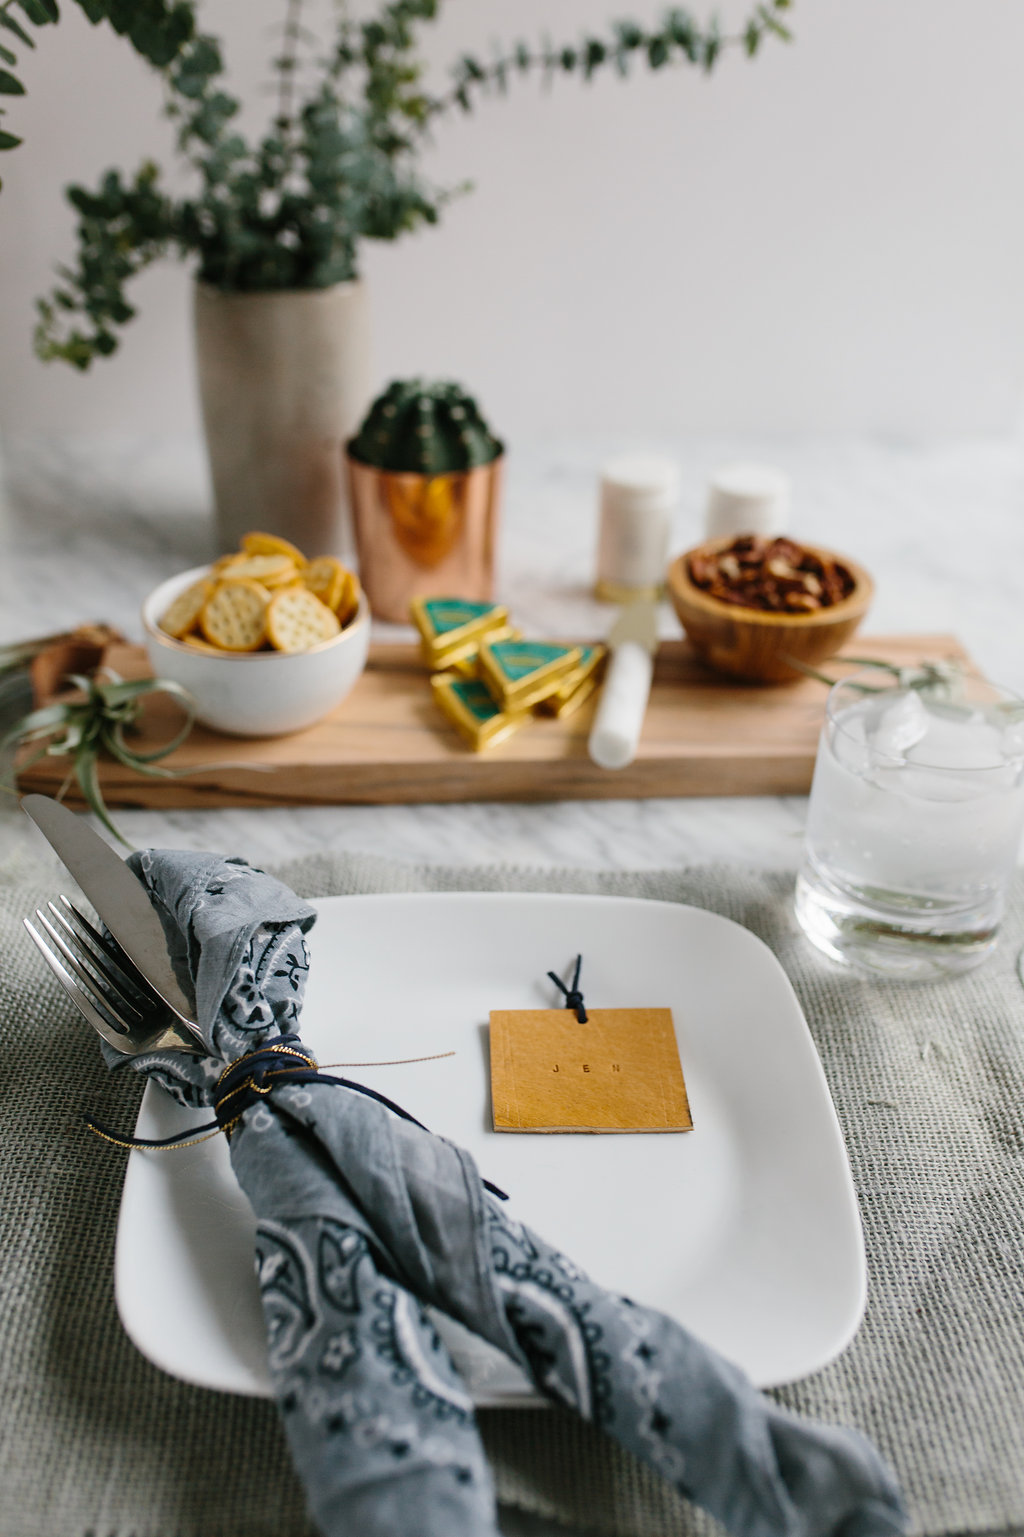 A DIY leather place cards  on a plate next to a knife and fork